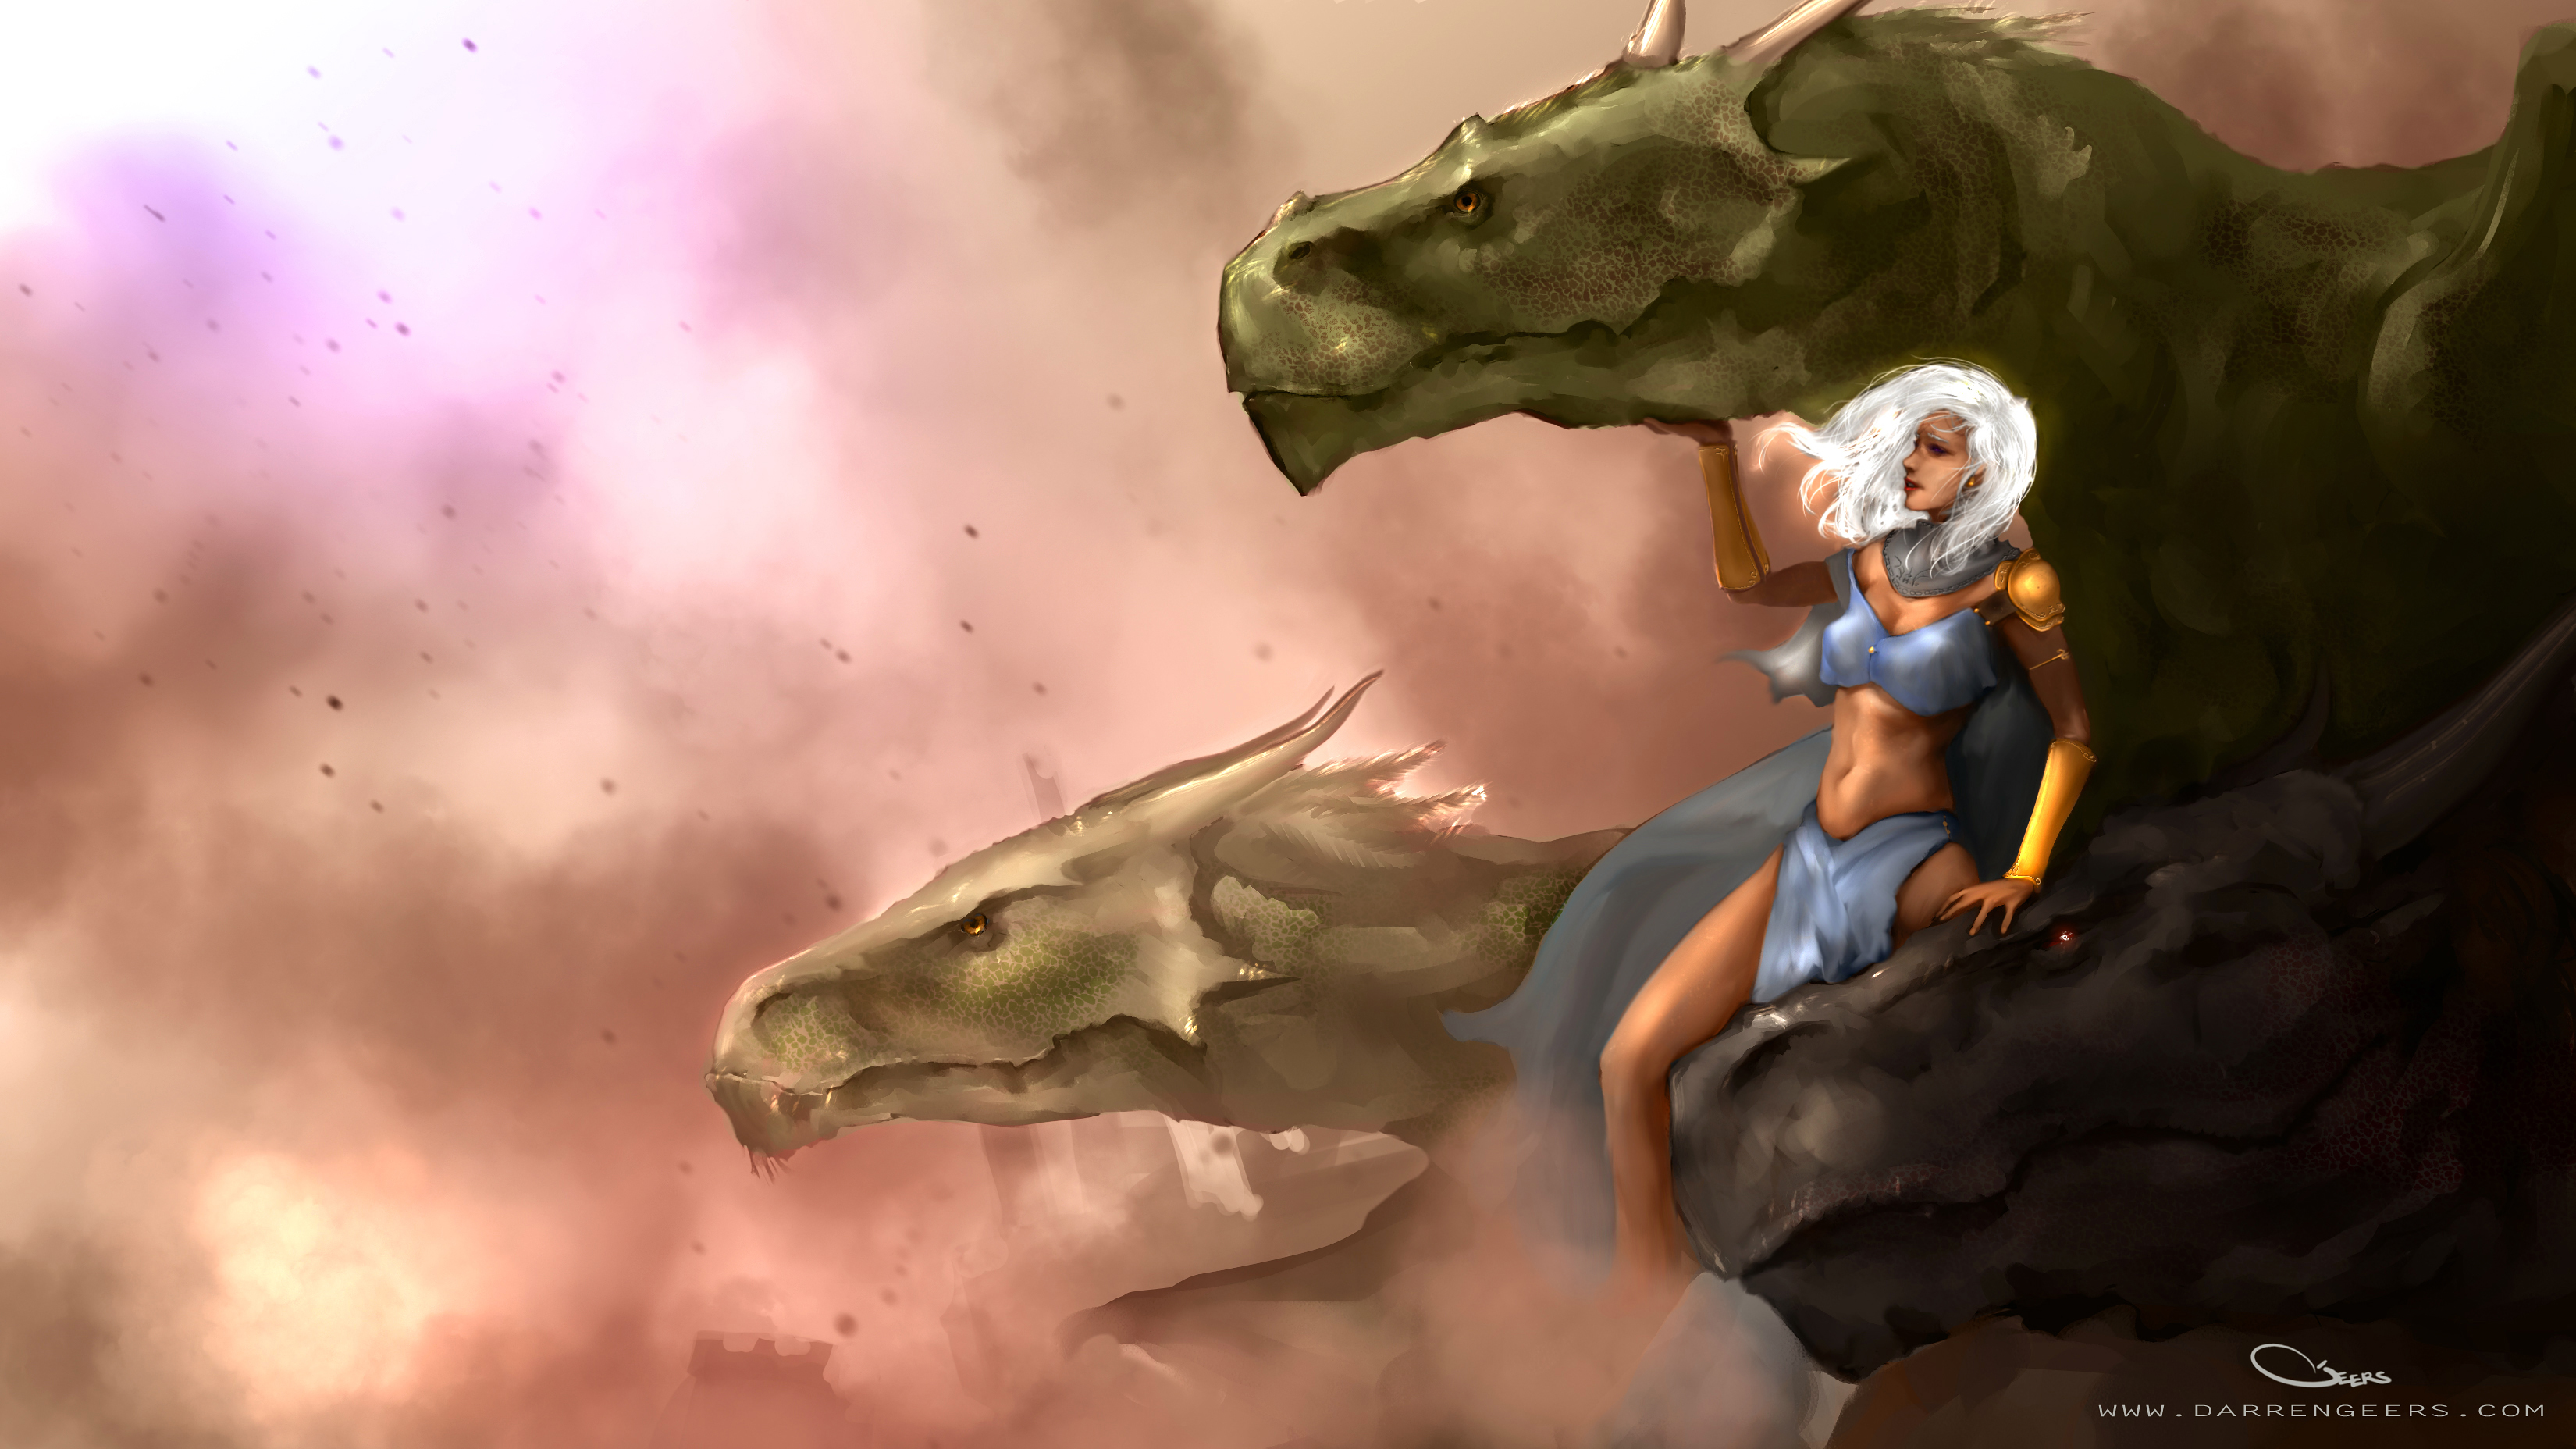 Dragons game of thrones colors -  Daenerys Targaryen And Dragons Game Of Thrones By Darrengeers